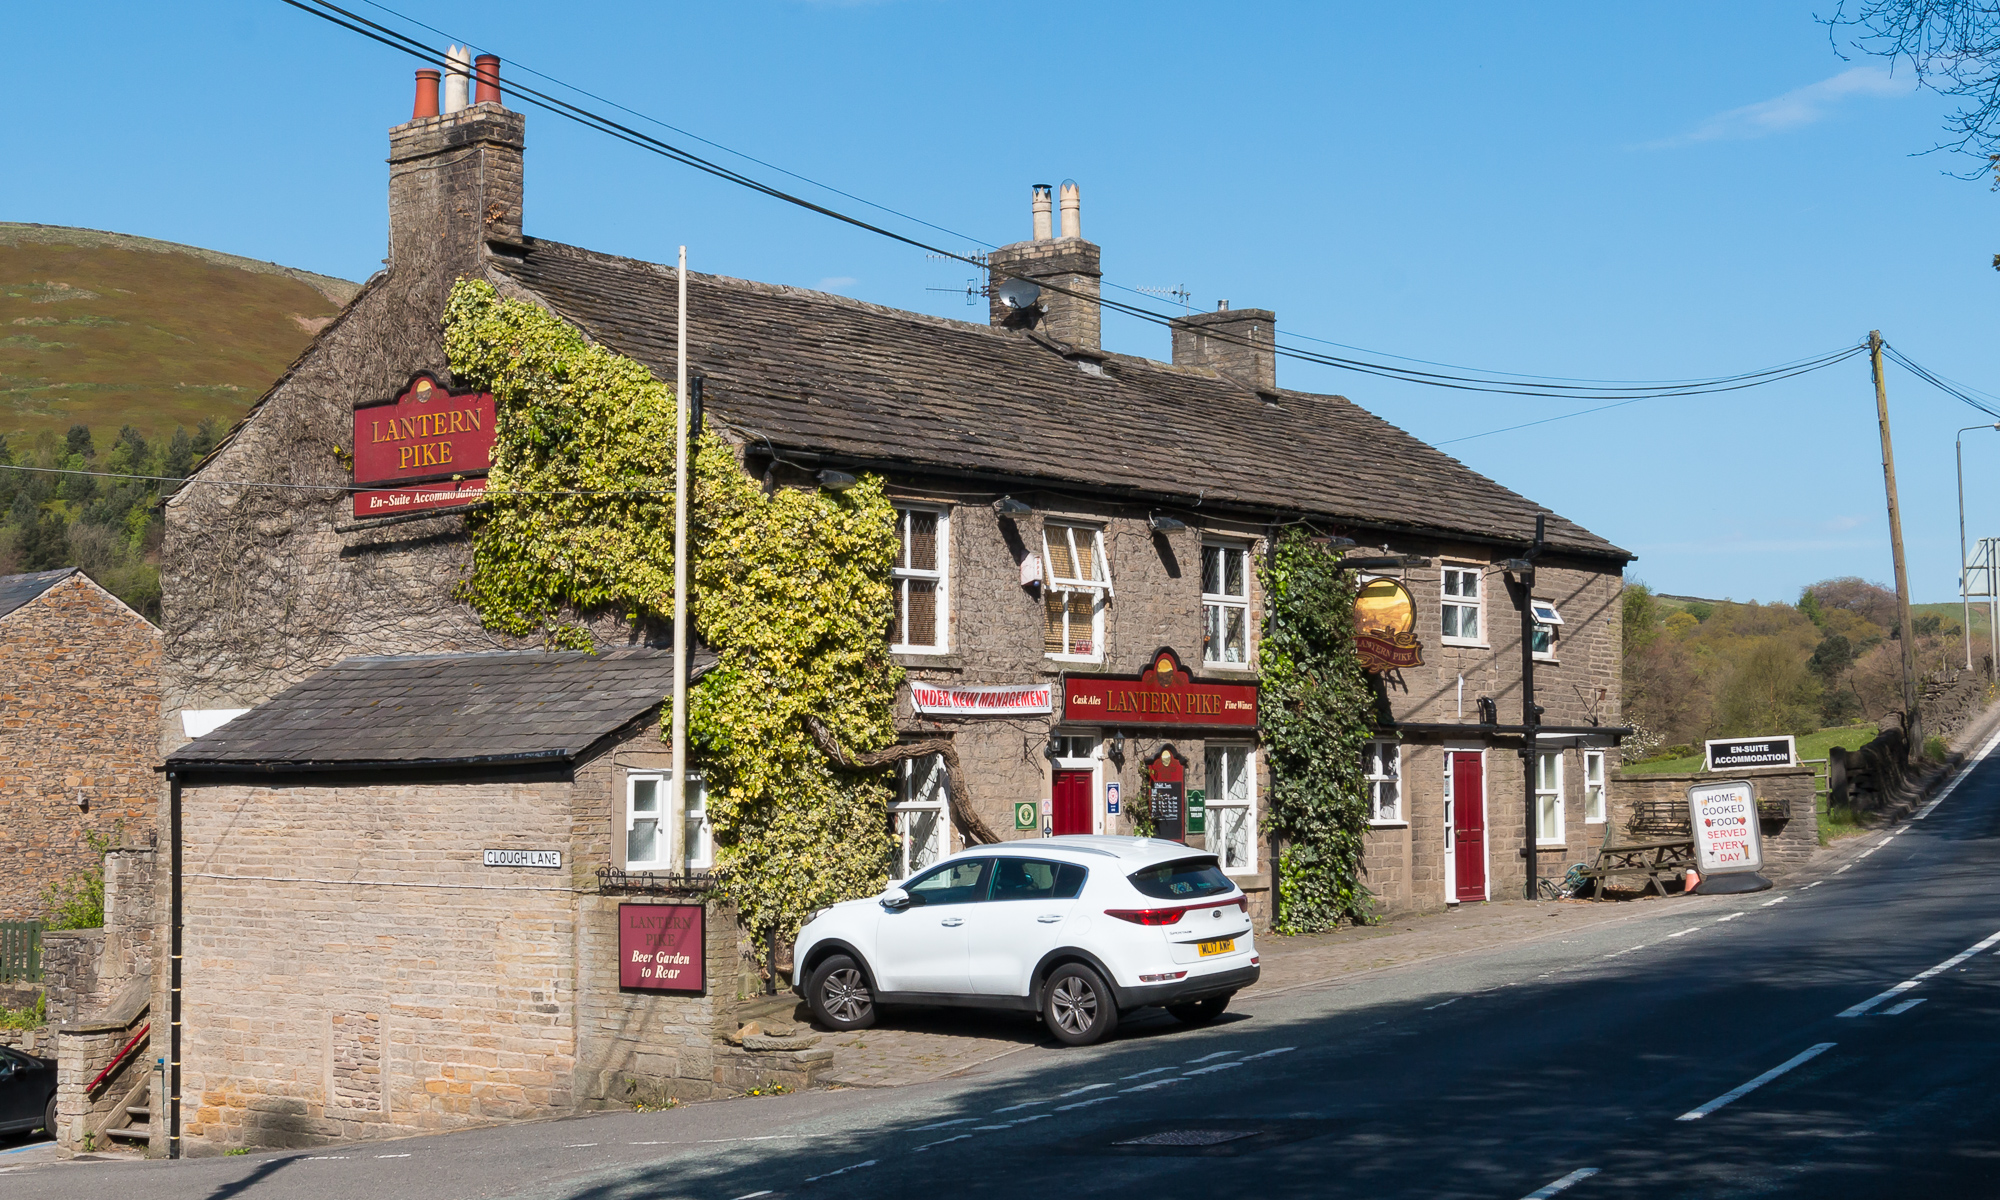 The Lantern Pike Inn